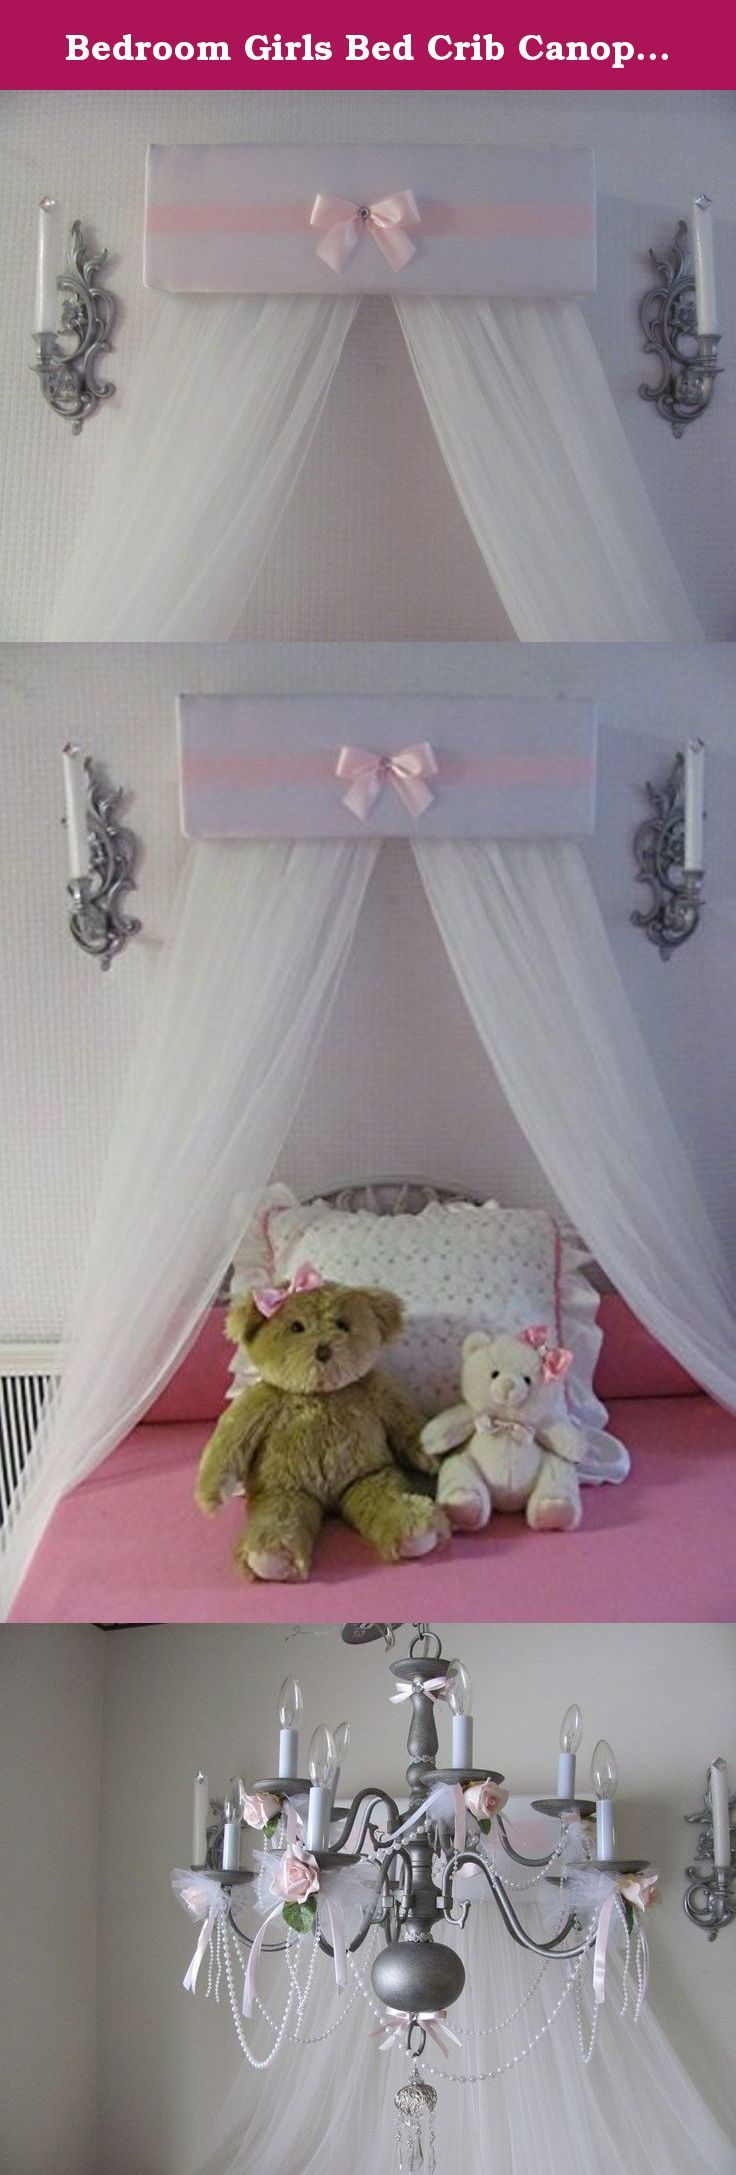 Crib for sale davao - Bedroom Girls Bed Crib Canopy White Padded And Pink Bow And Band With White Sheer Curtains